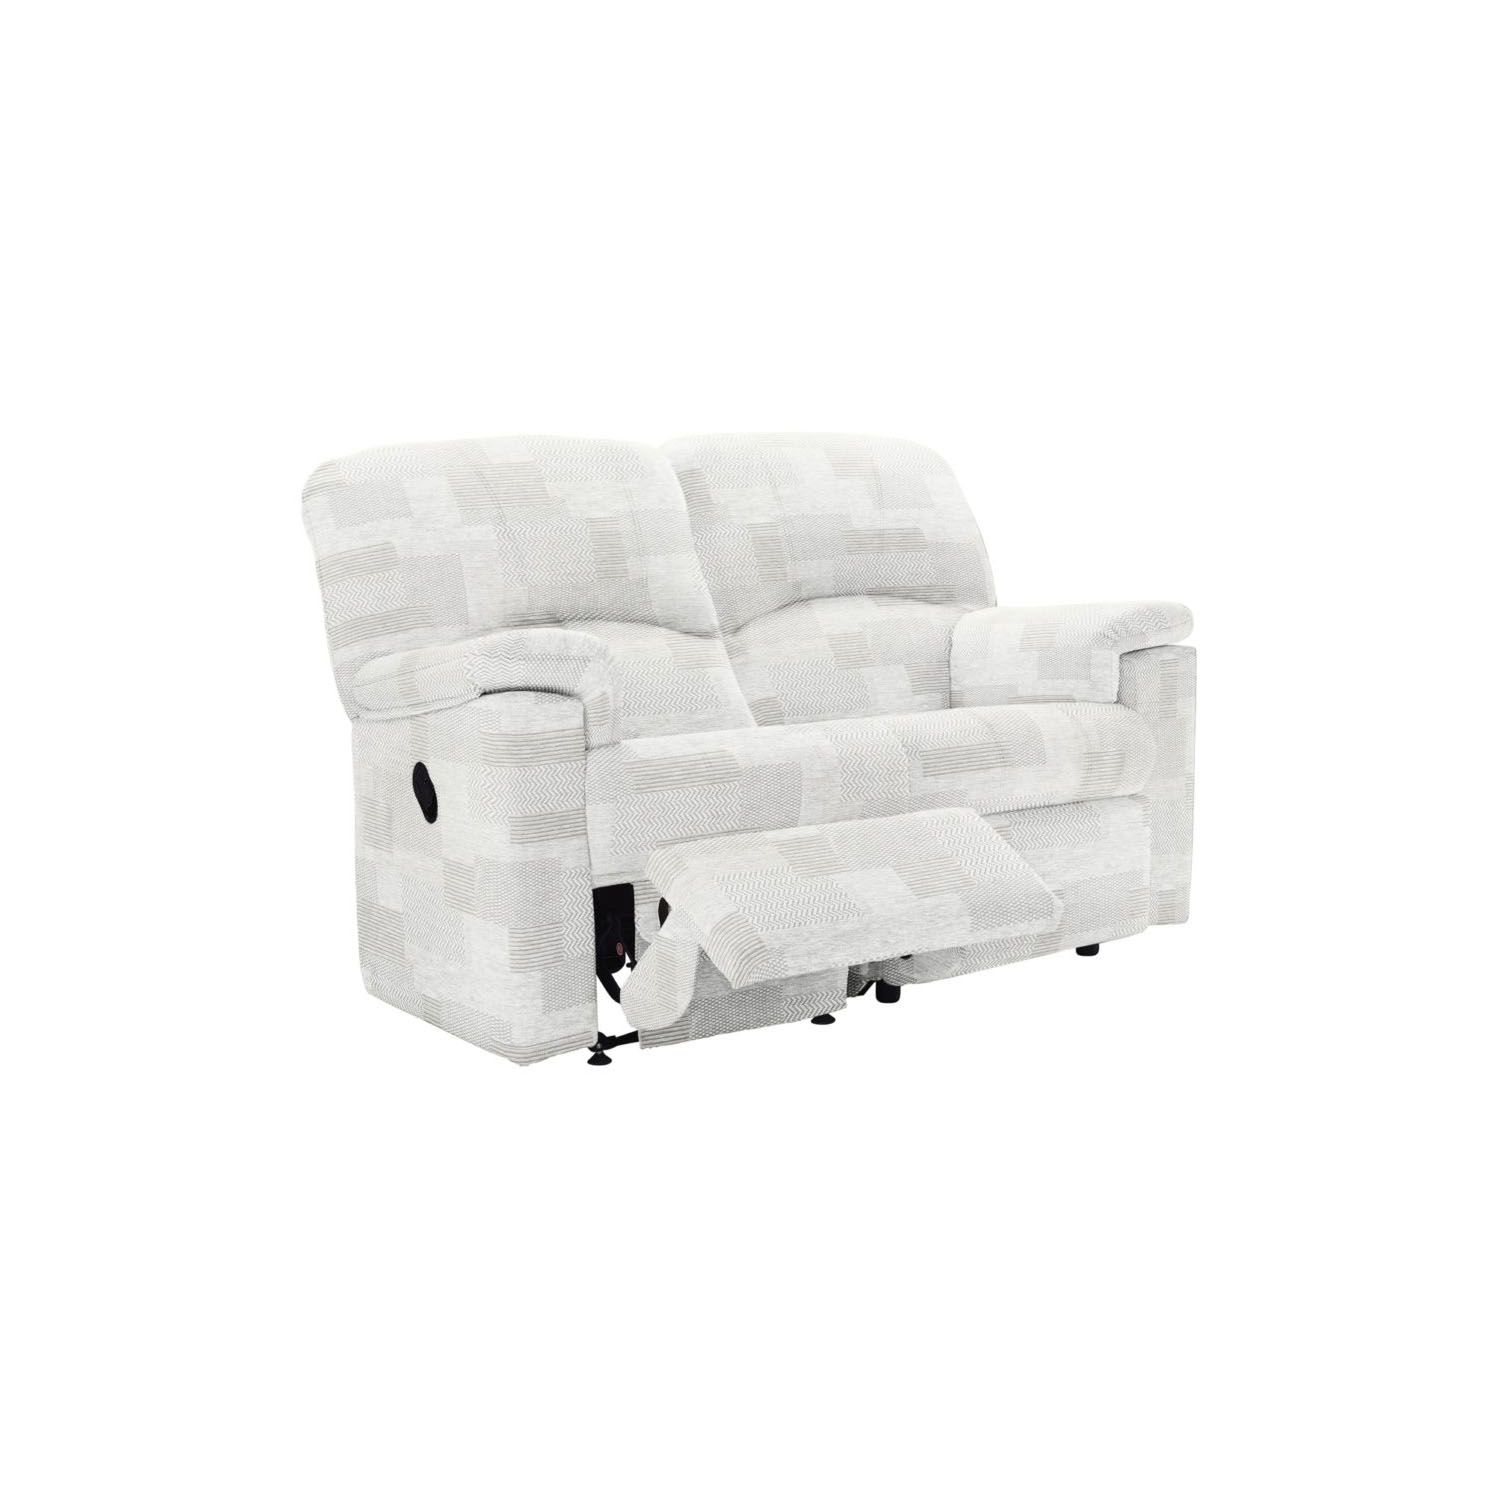 Image of G Plan Chloe 2 Seater Double Manual Recliner Fabric Sofa